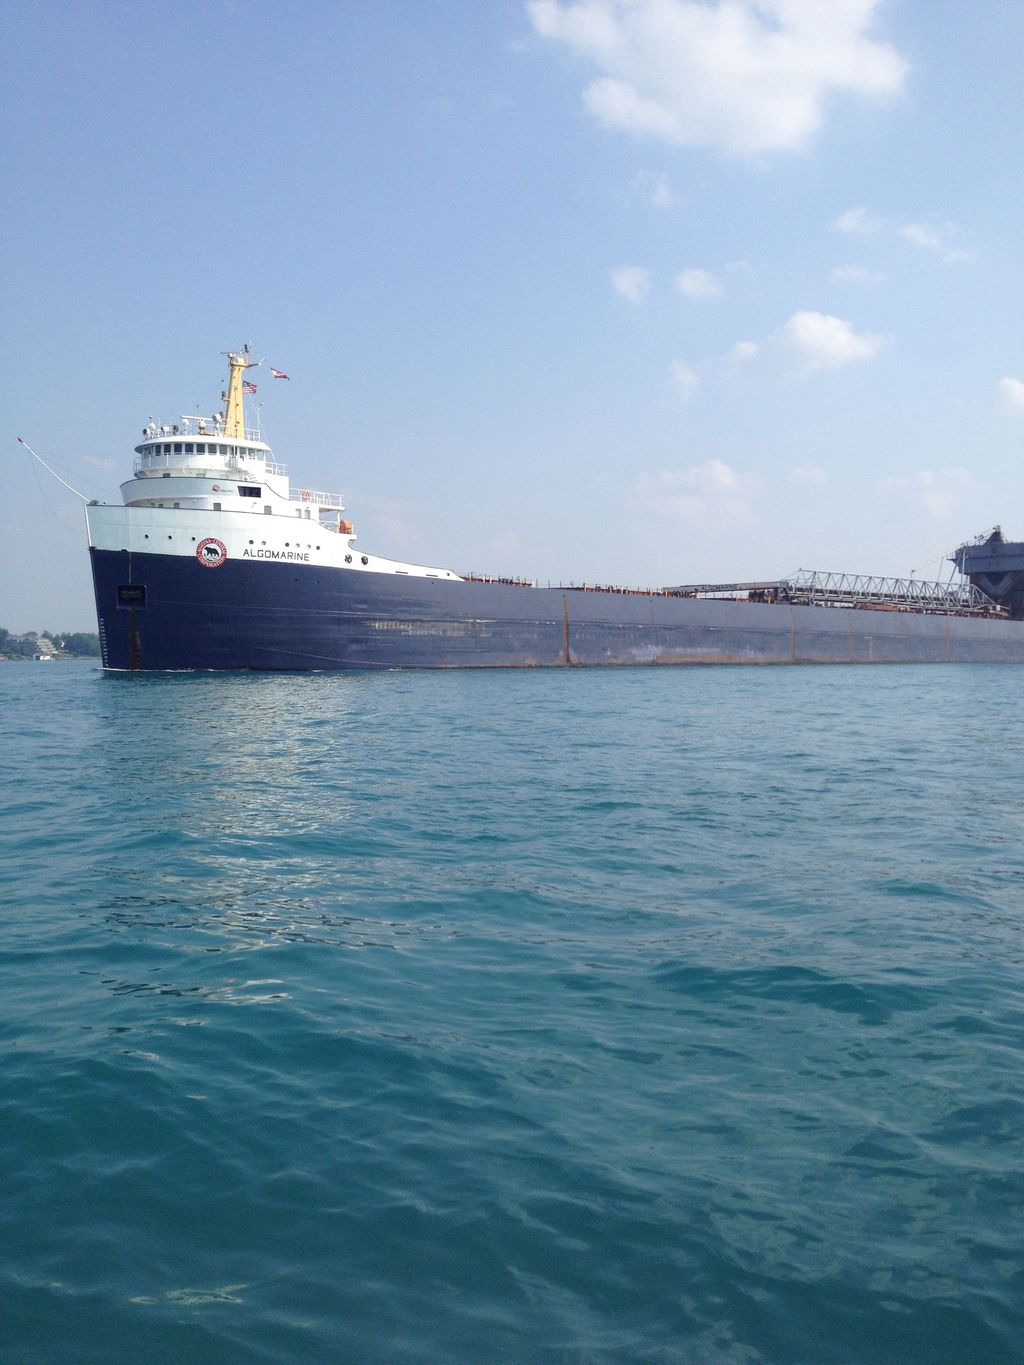 picture of great lakes ship: Algomarine